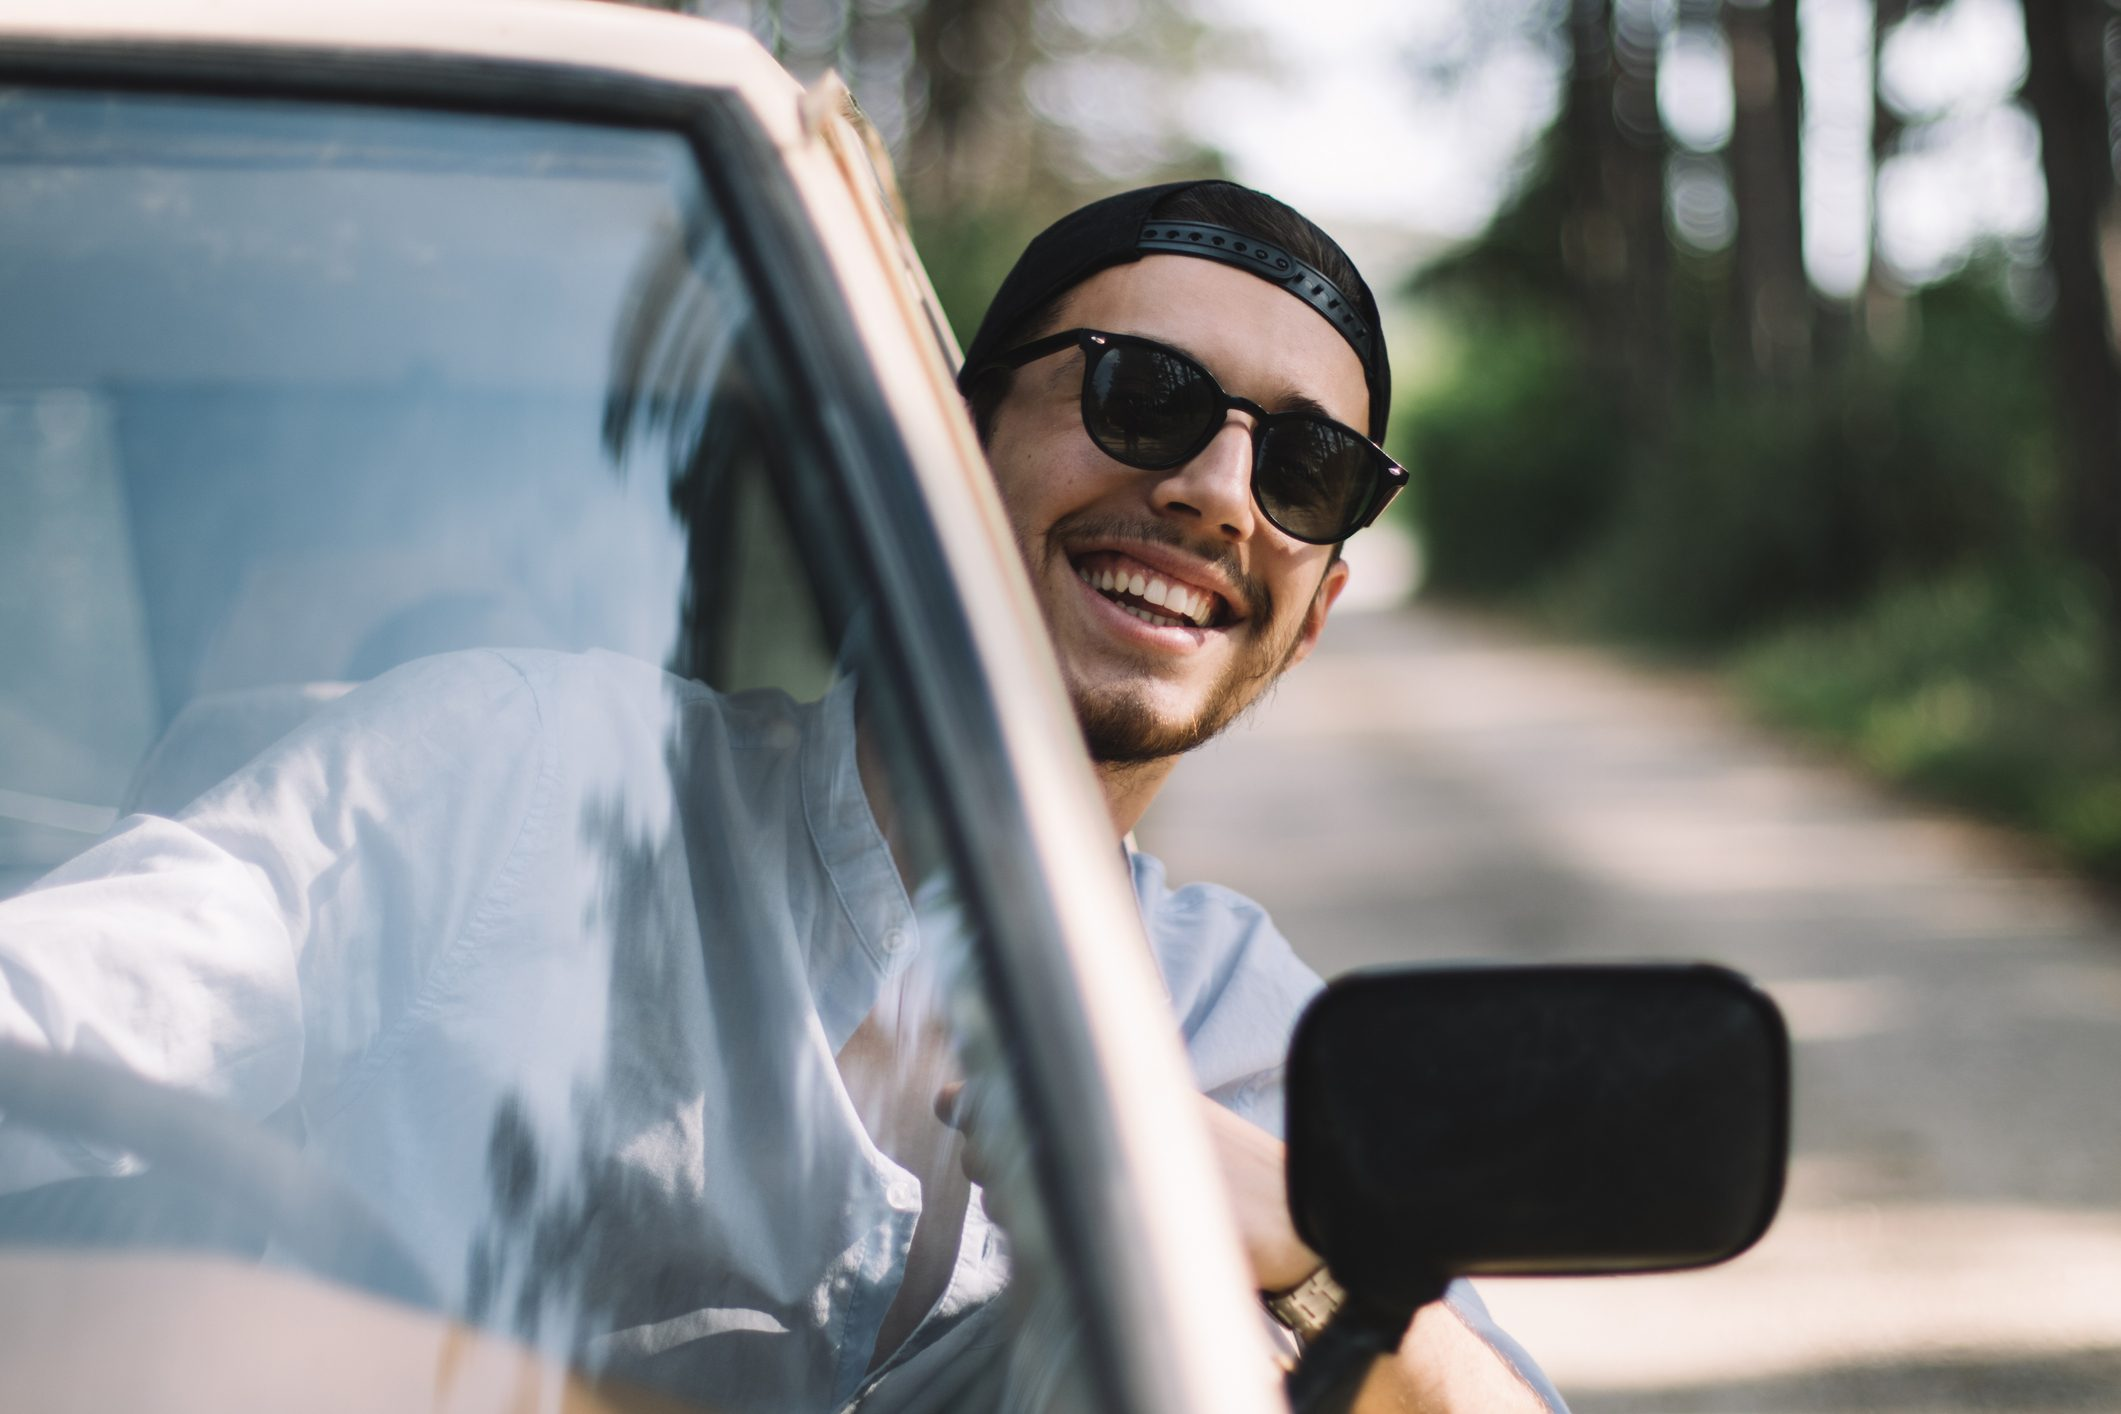 Young man with black hair and sunglasses looking through window of car while driving and smiling at camera